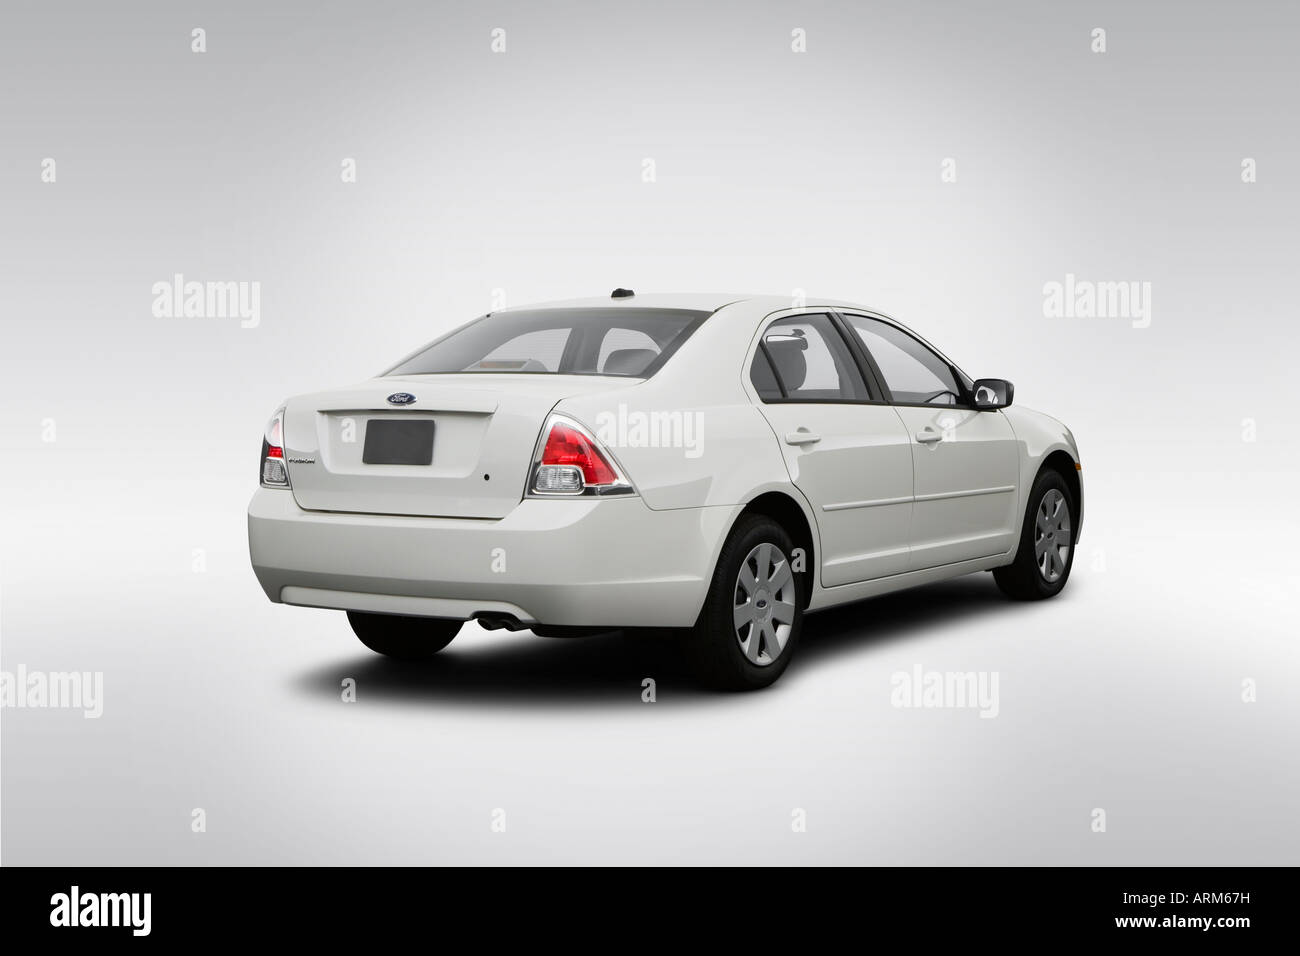 2008 Ford Fusion S in White - Rear angle view - Stock Image